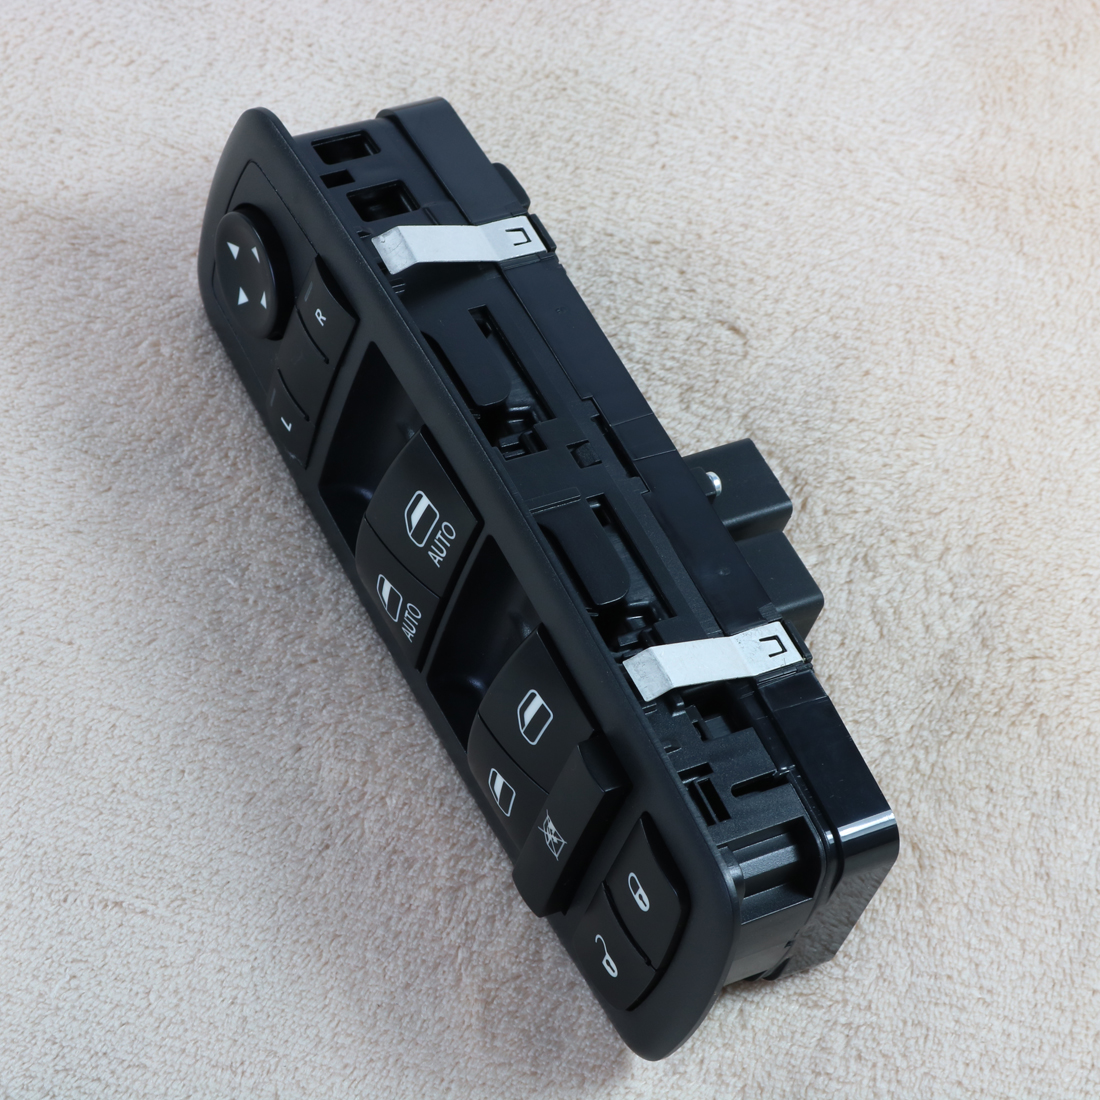 68231805AA Front Left Master Window Switch FIT 2011-2017